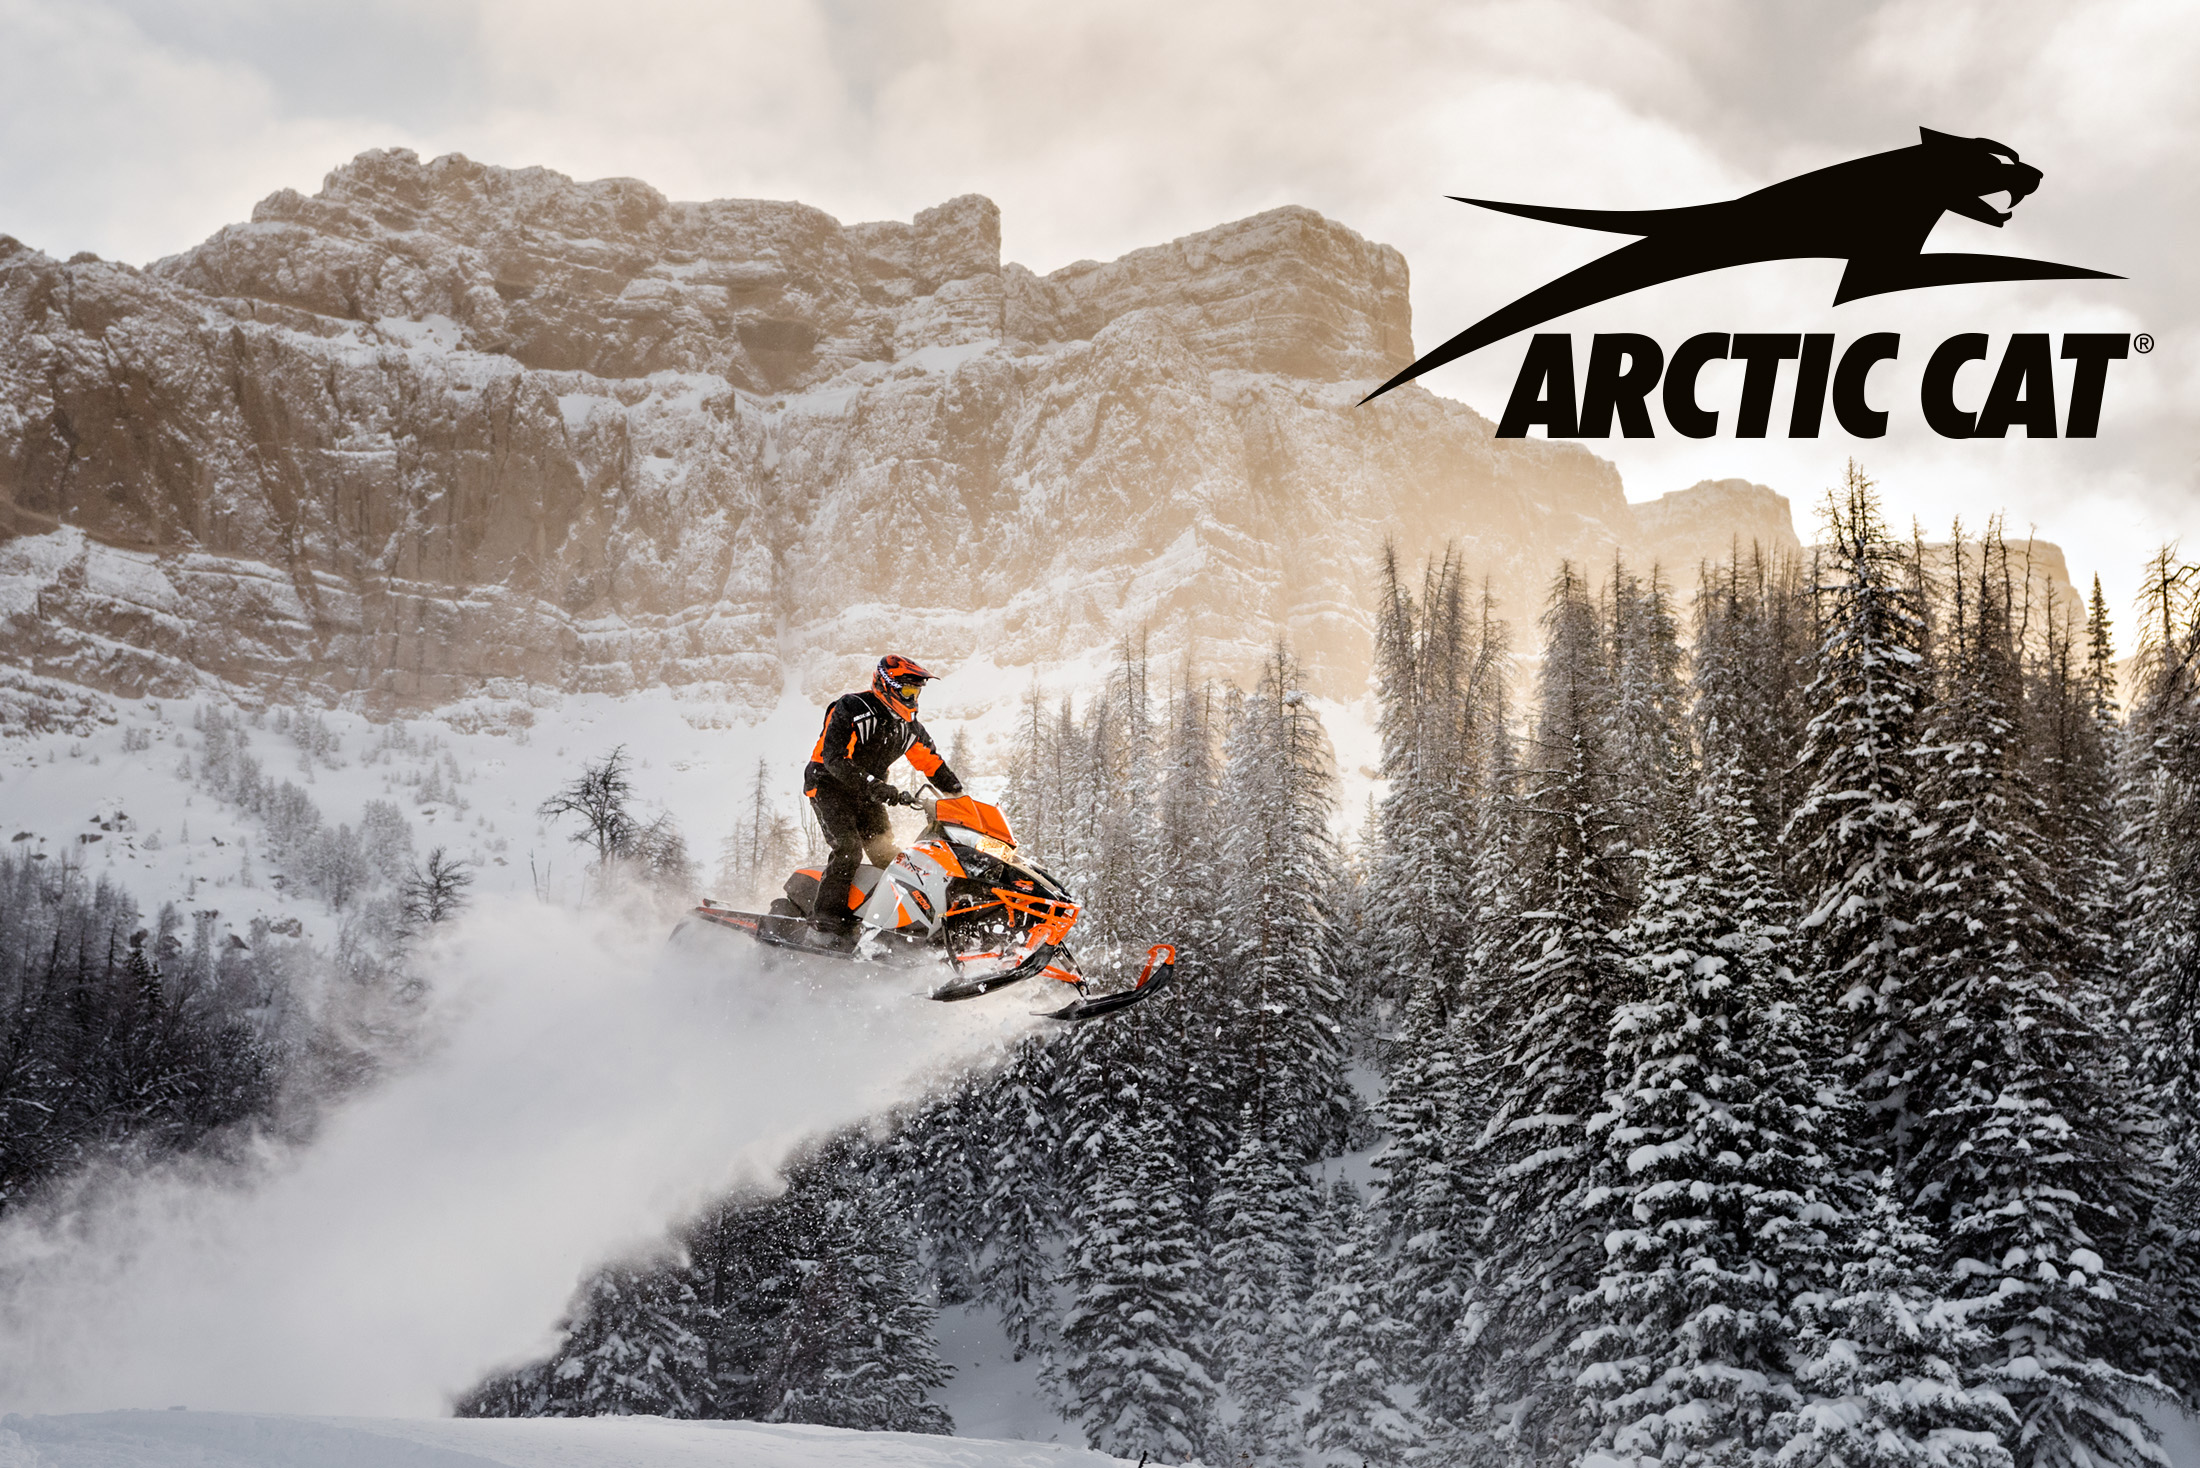 201612_Arctic_Cat_11579_4540_logo